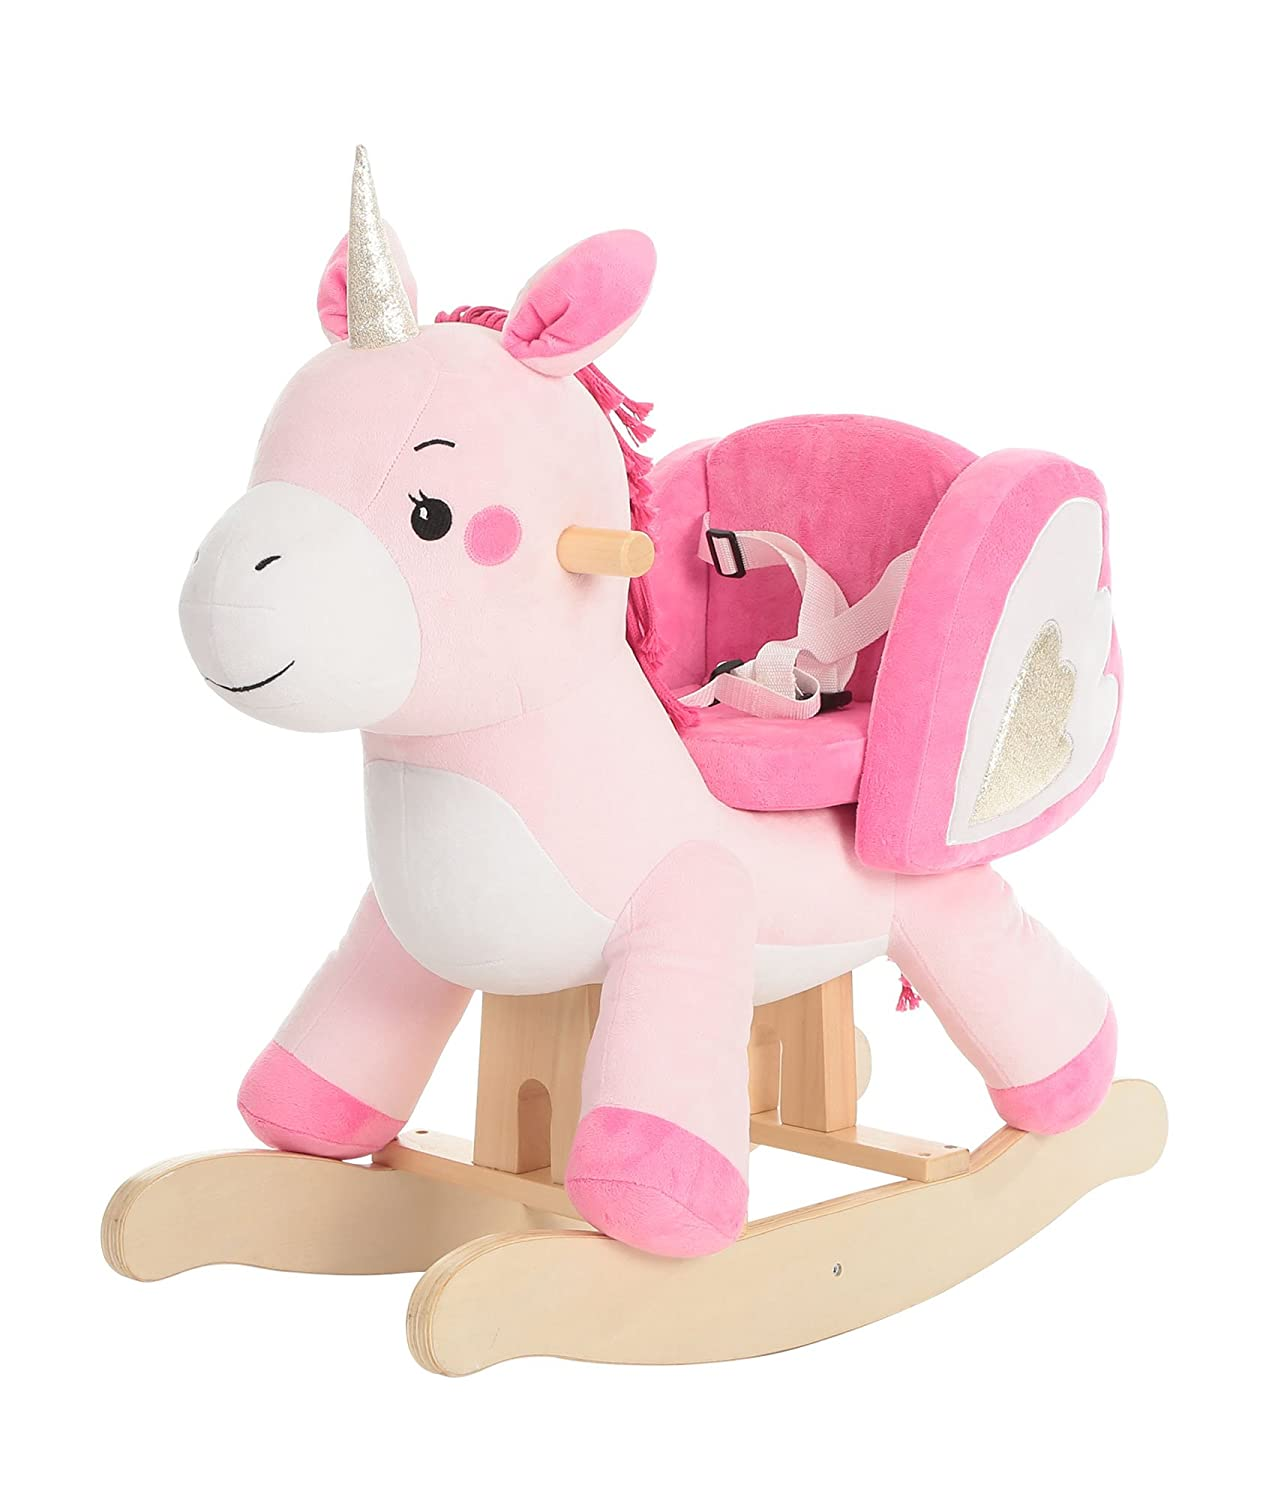 23 Best Unicorn Toys and Gifts for Girls Reviews of 2021 44